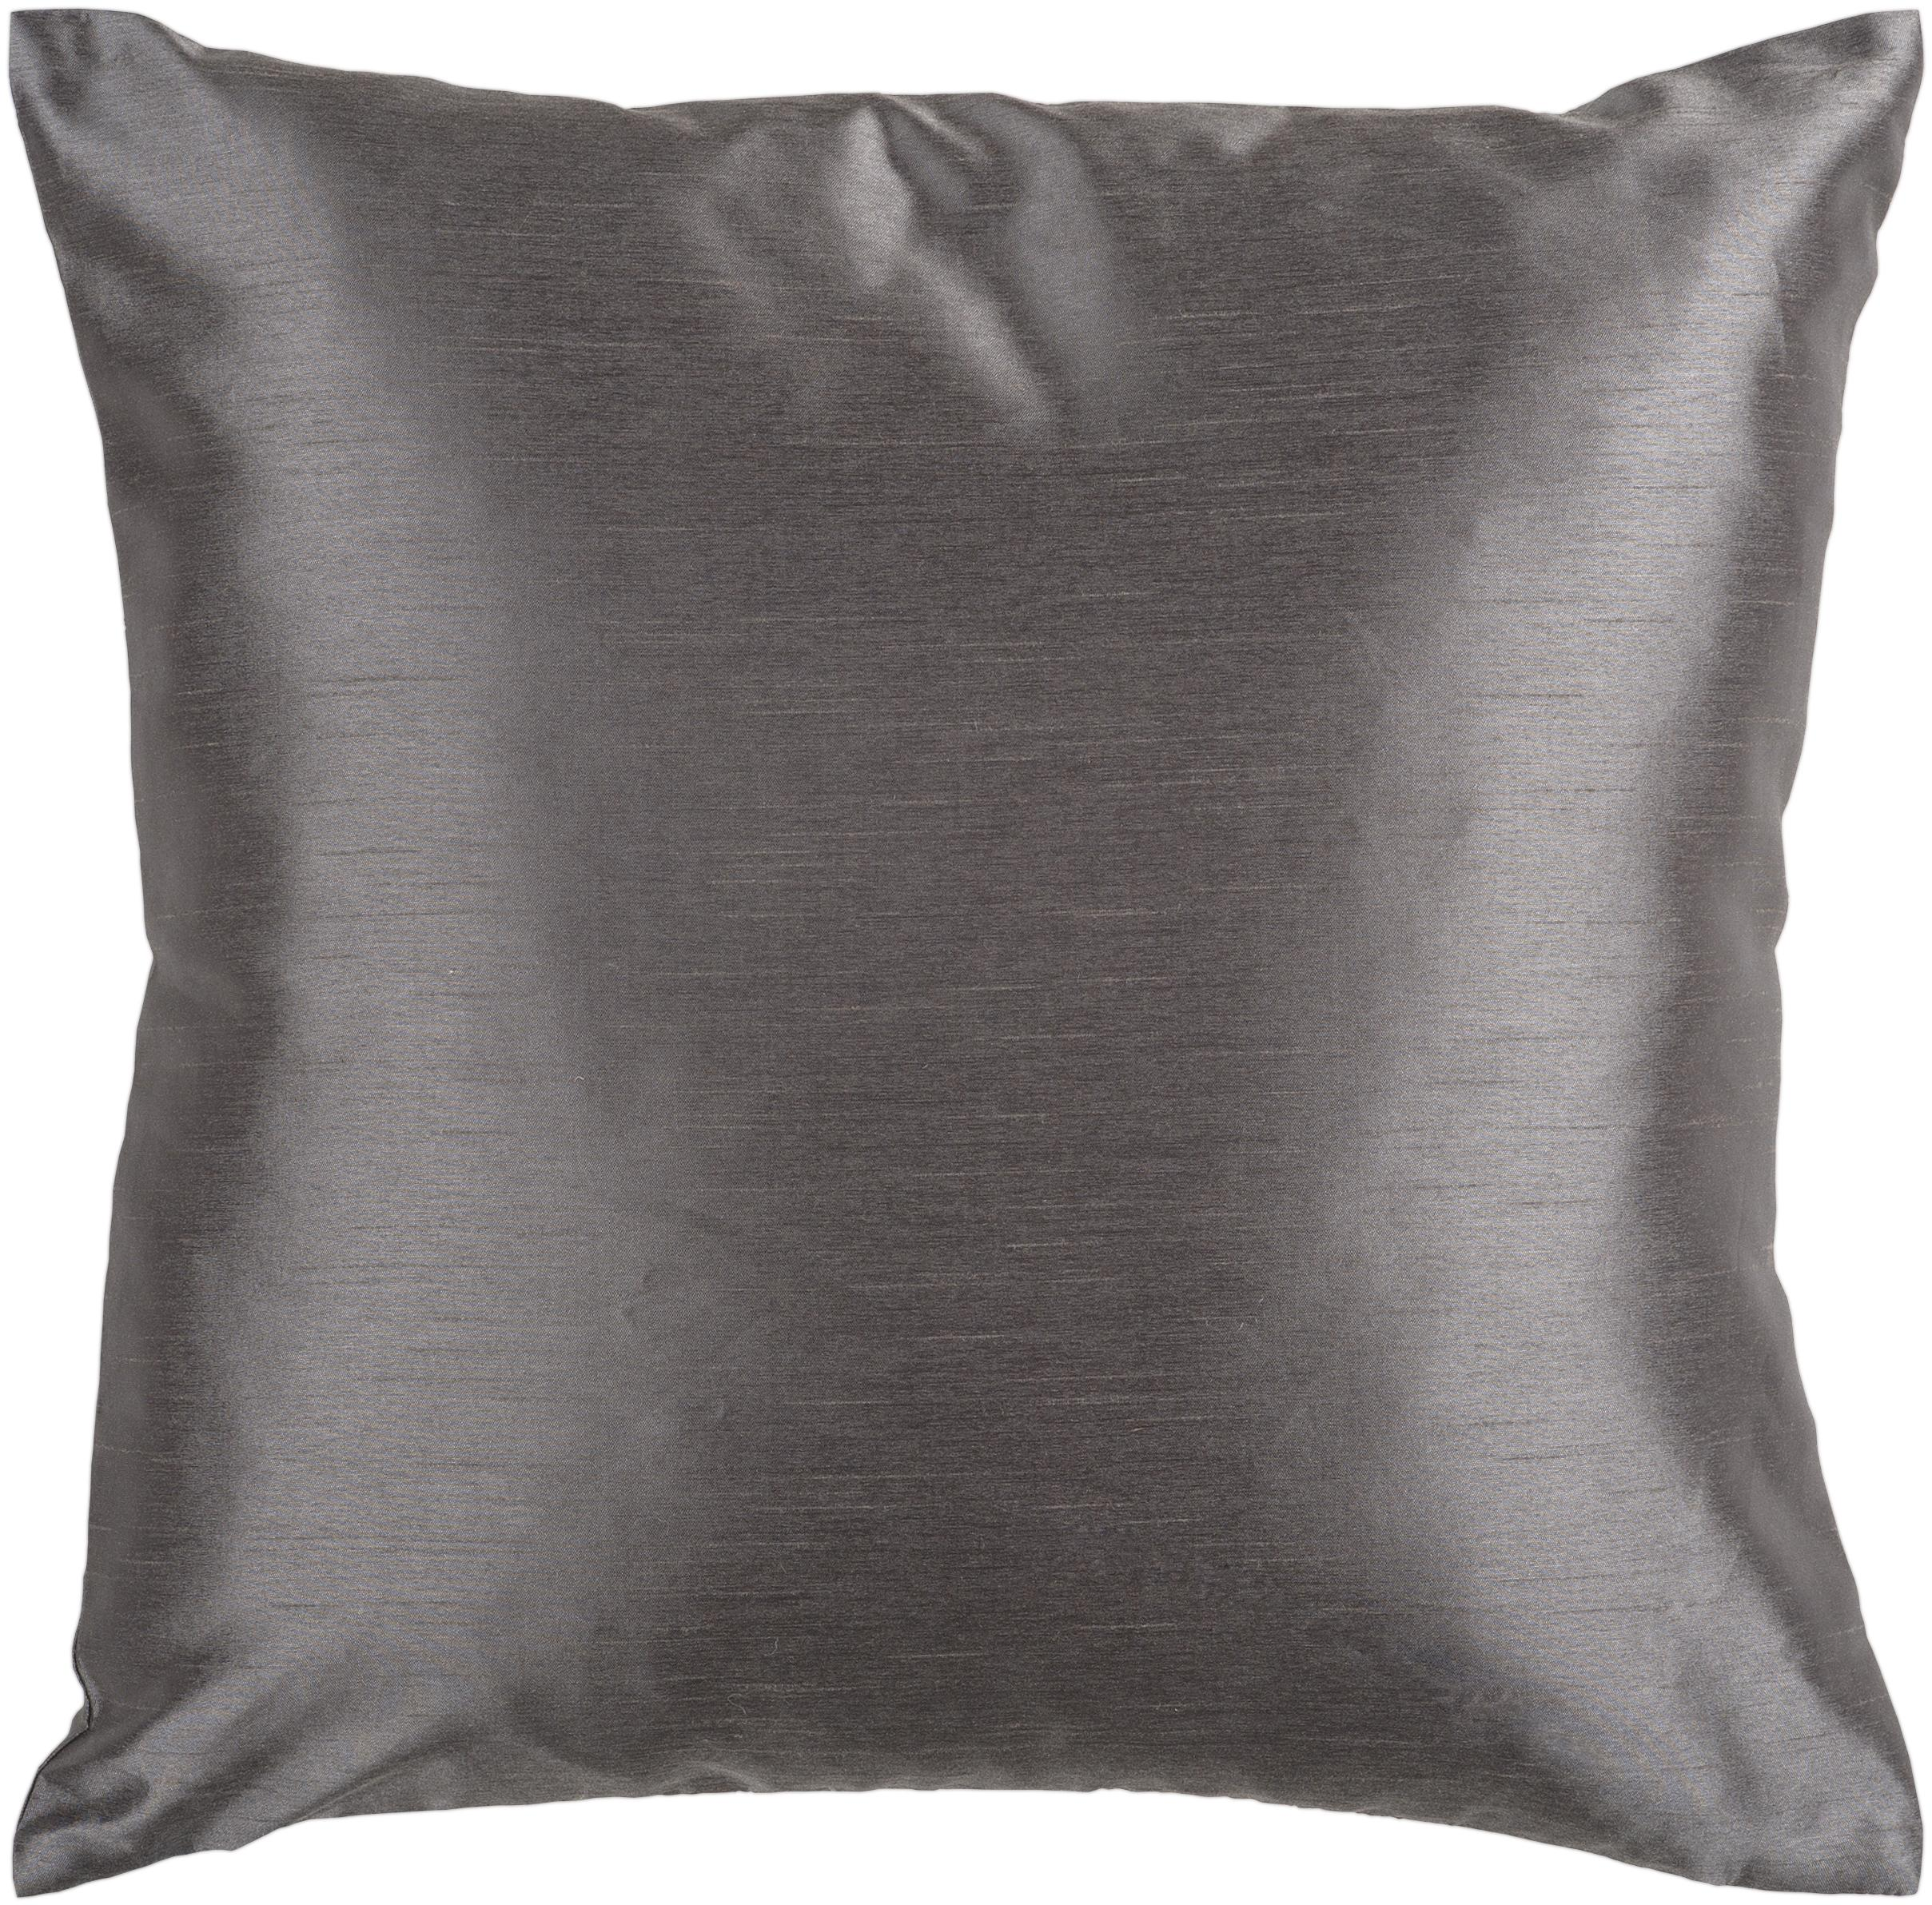 "Surya Pillows 22"" x 22"" Pillow - Item Number: HH034-2222P"